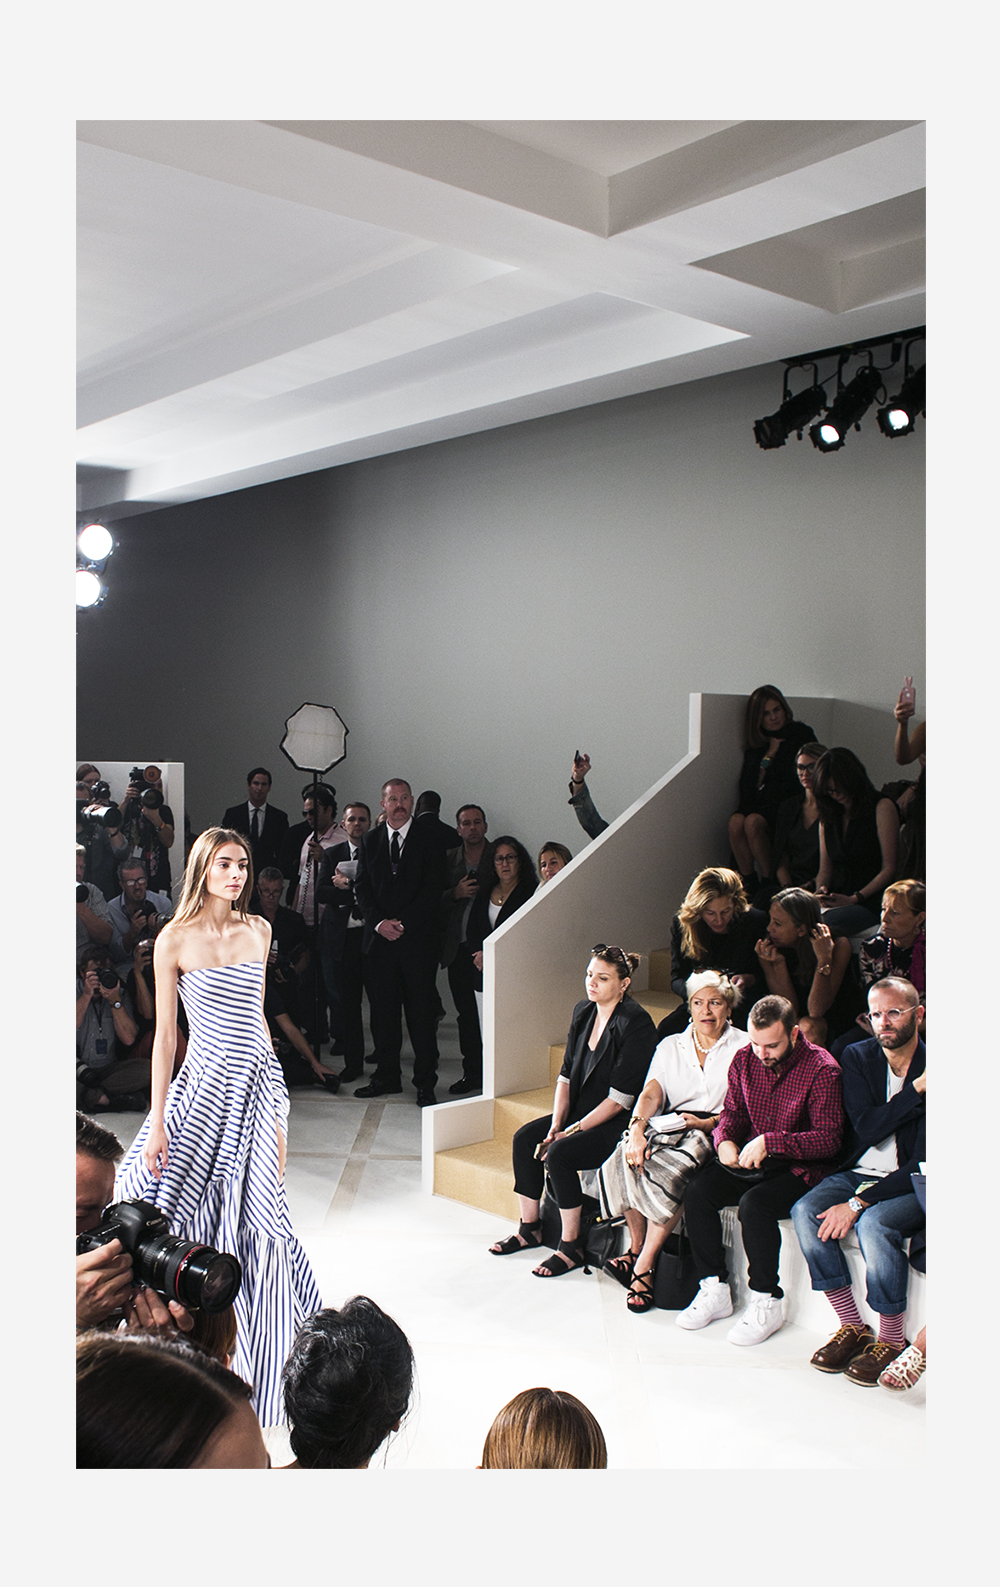 ralph lauren ss16 new york fashion week sania claus demina_1b